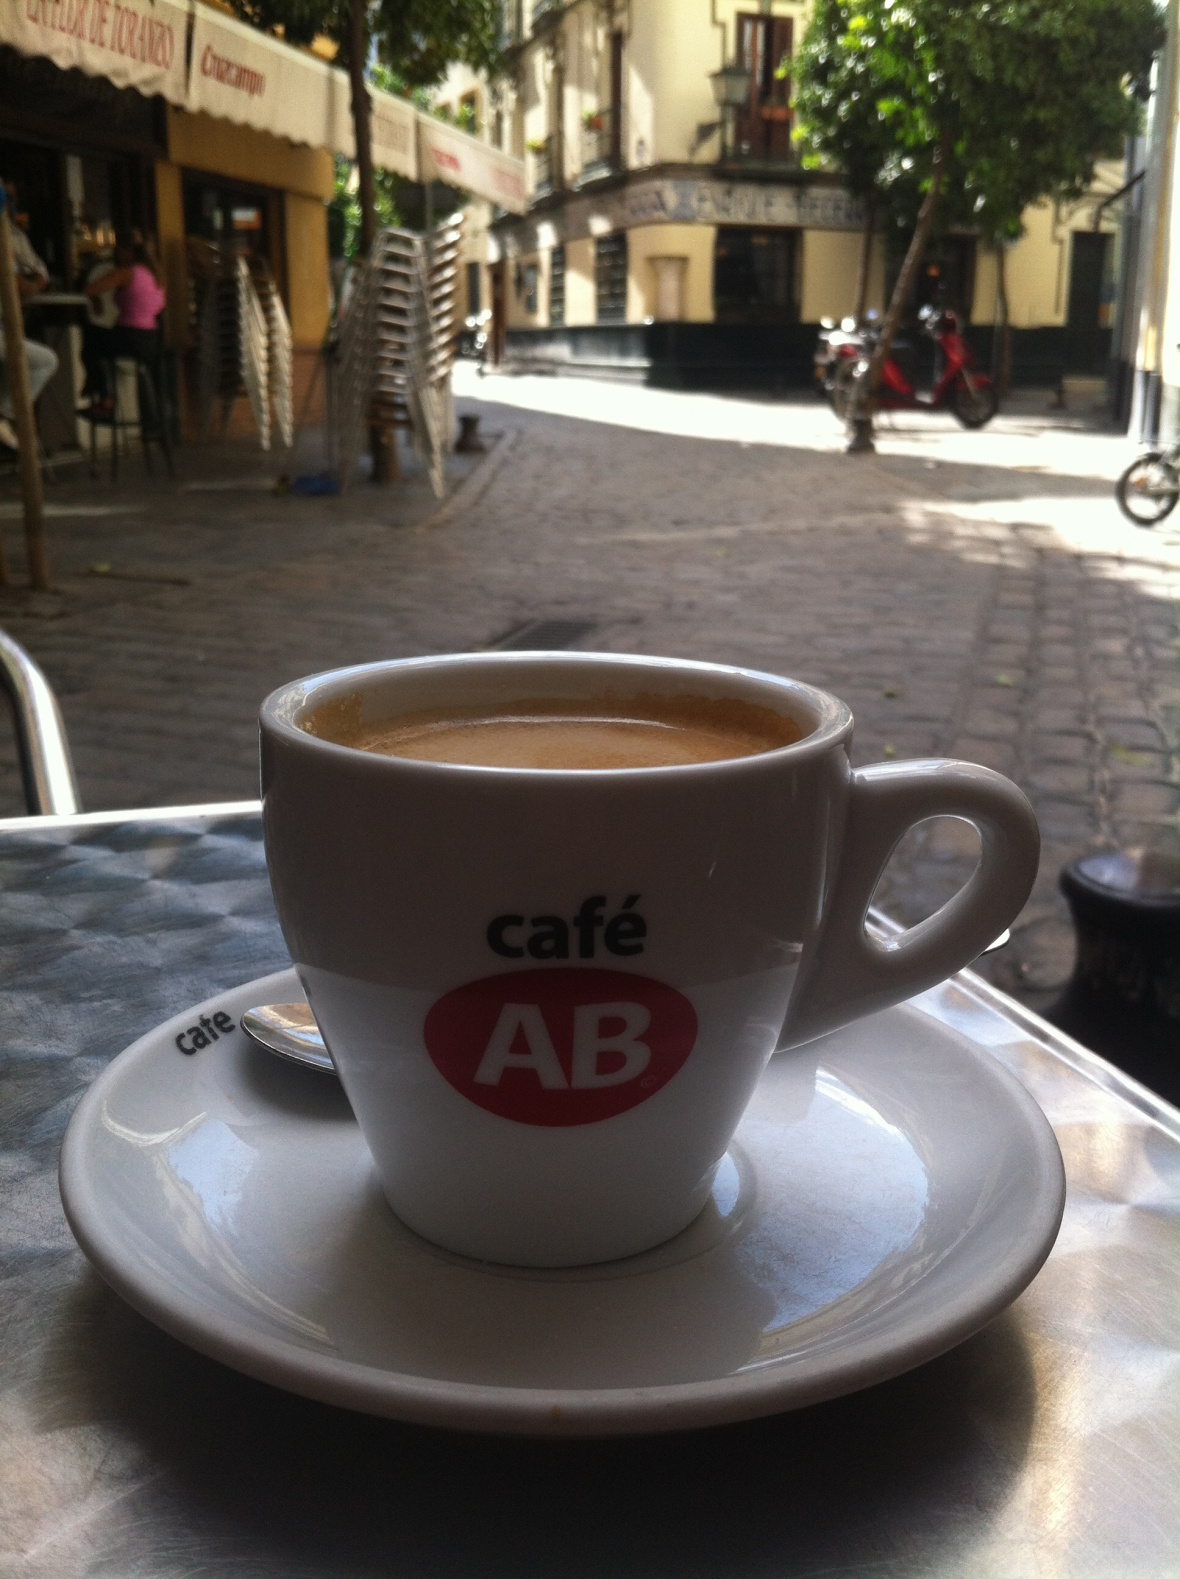 The View Today: Cafe con Leche